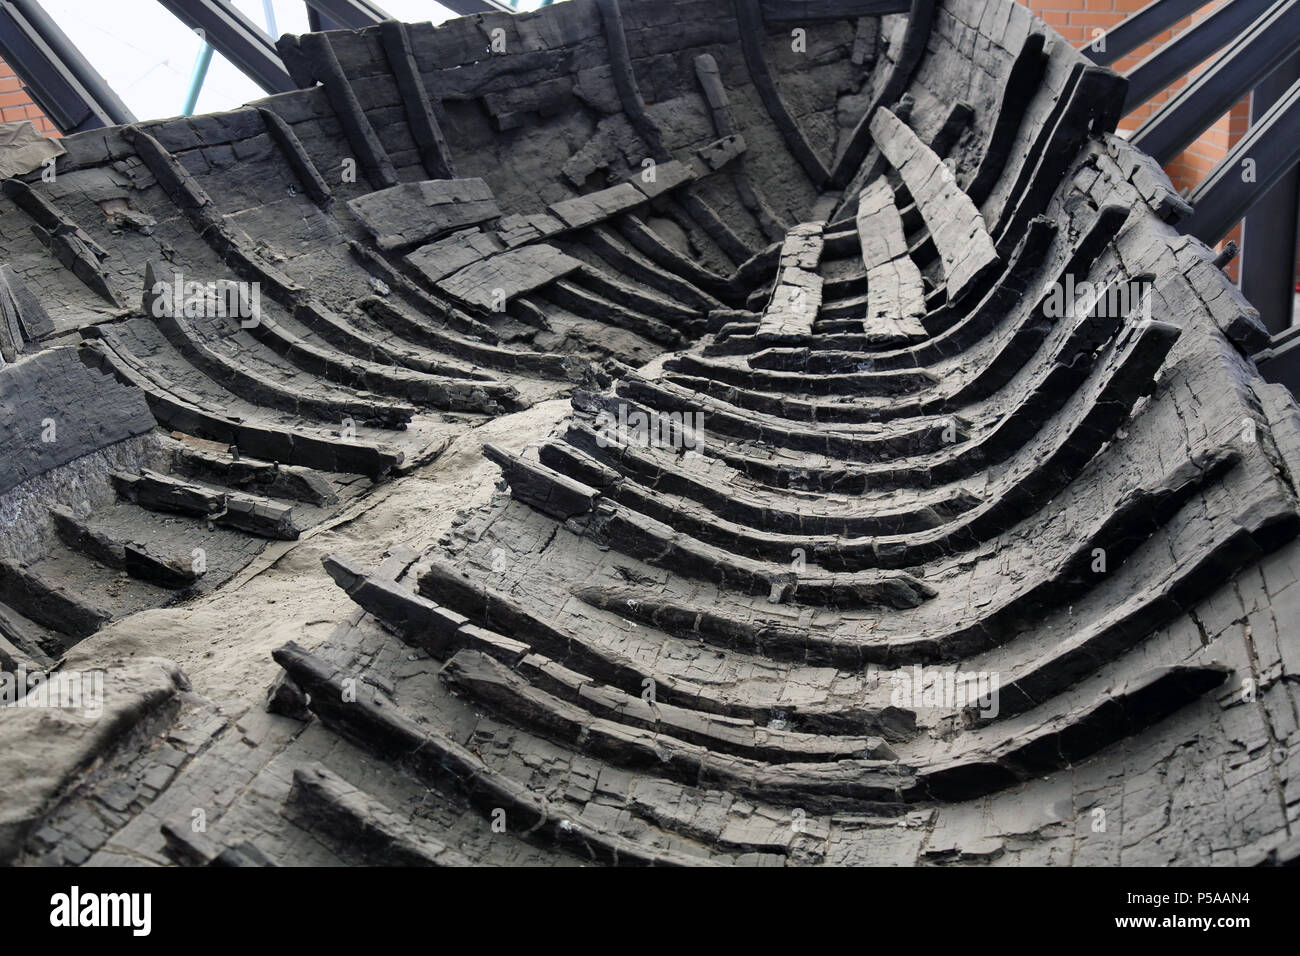 old carbonised boat fount at the partly uncovered roman city of Herculaneum destroyed by pyroclastic rock when vesuvius erupted in 79 AD Stock Photo